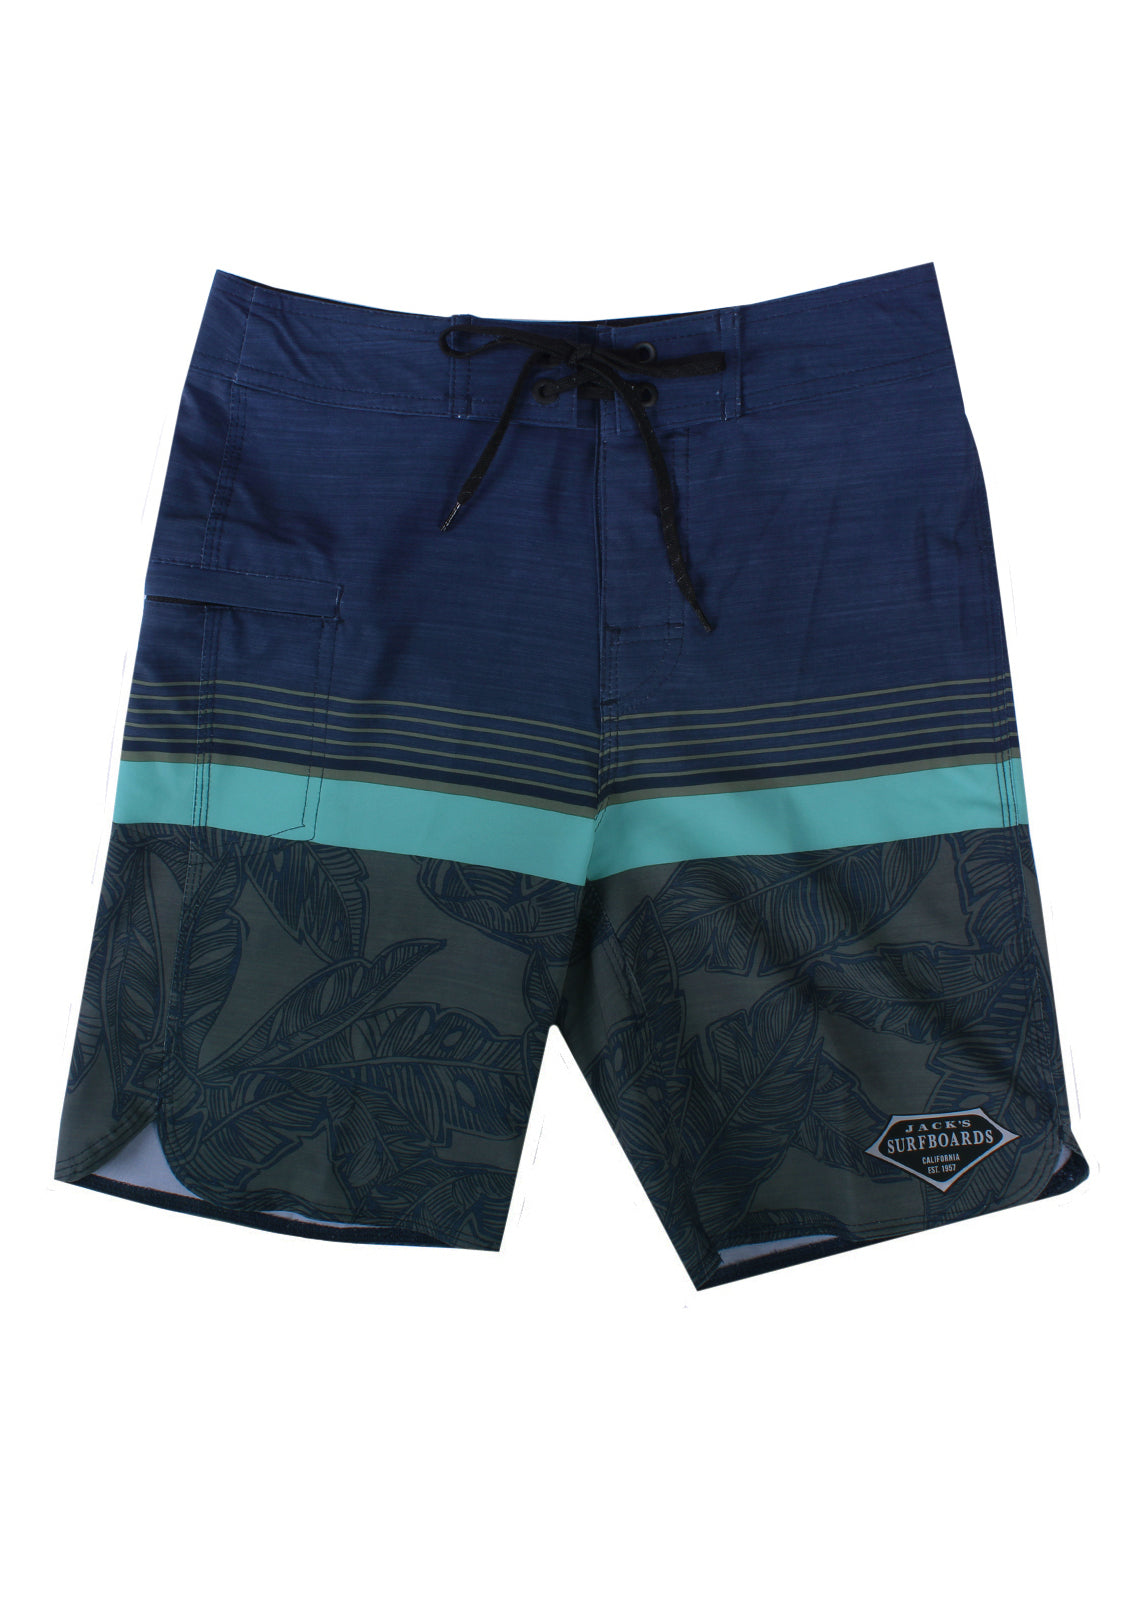 Jacks Surfboard Boys Visual Boardshort